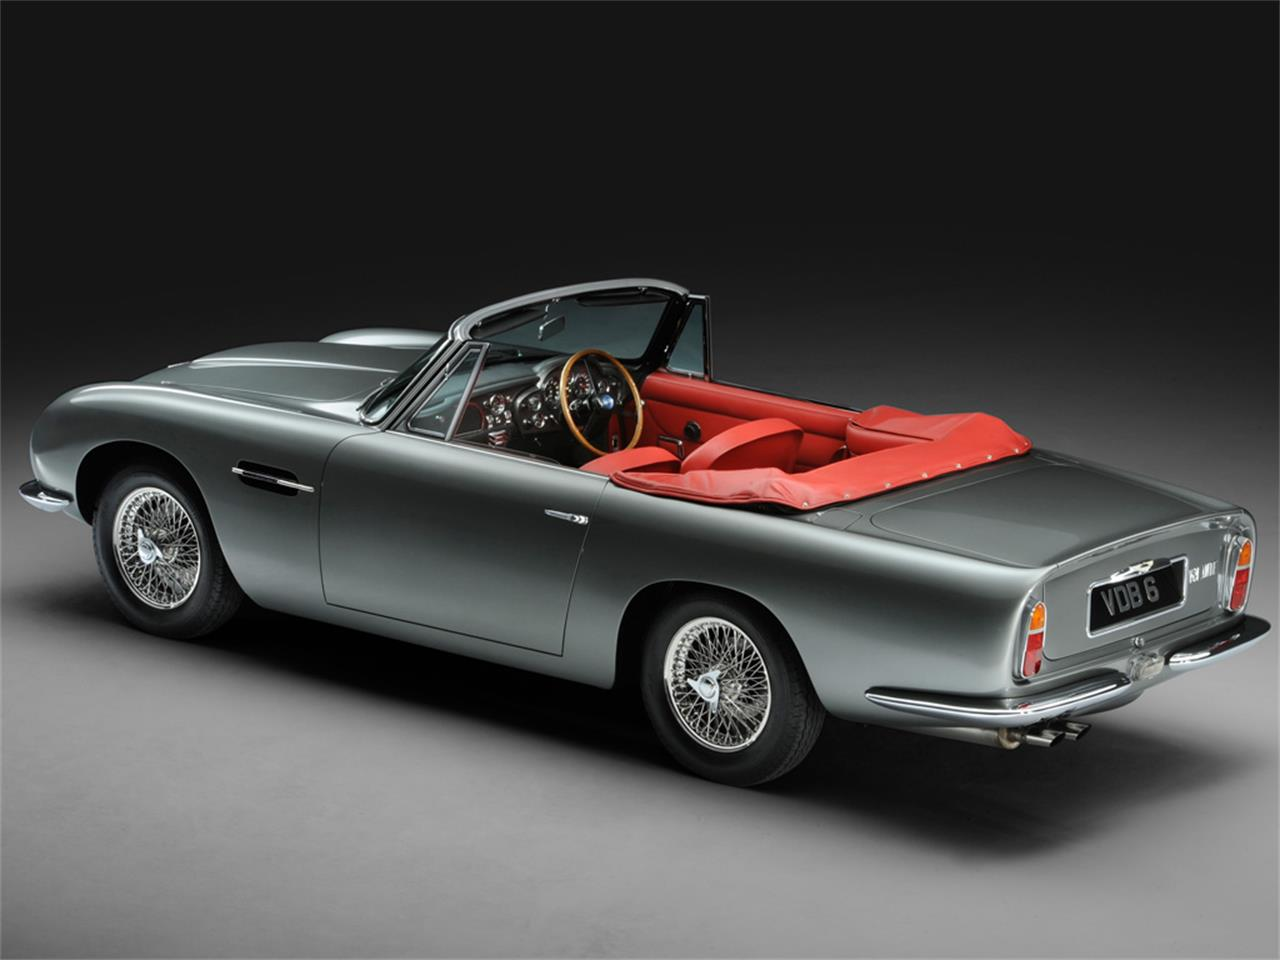 Large Picture of 1967 Aston Martin DB6 MKI Vantage Volante Offered by JD Classics LTD - IVCB